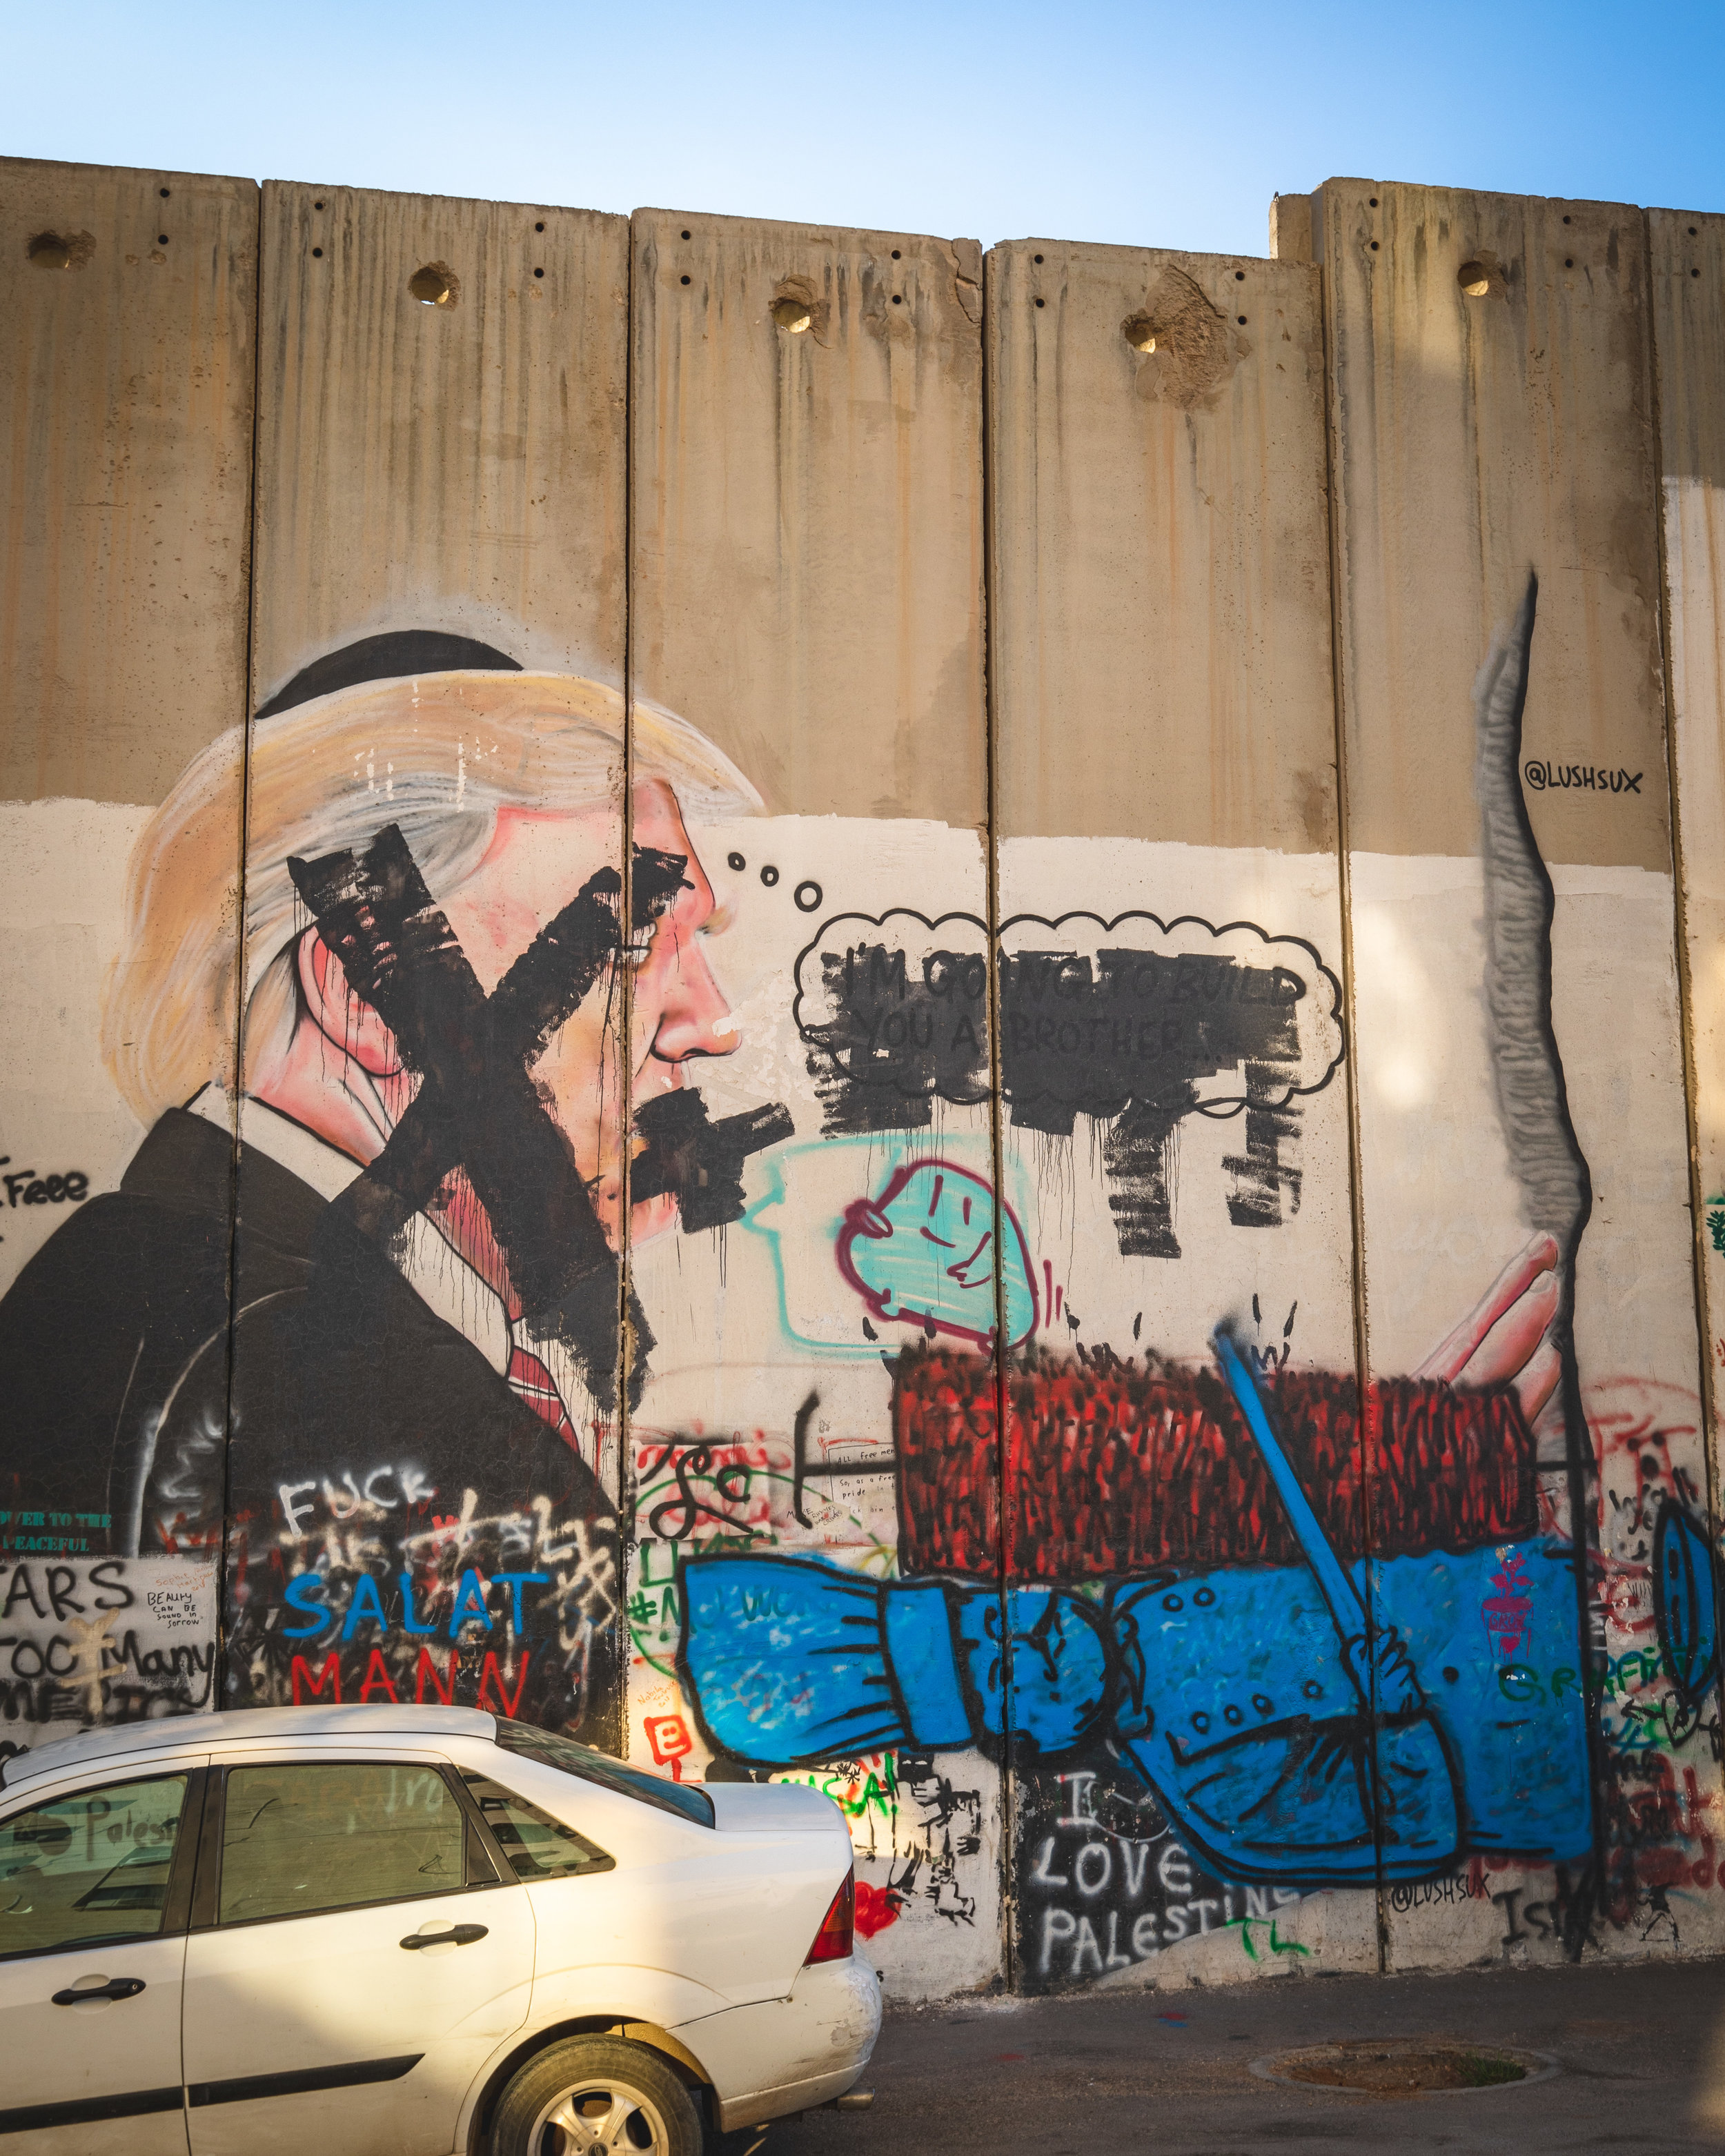 Graffitti on the wall with Palestine